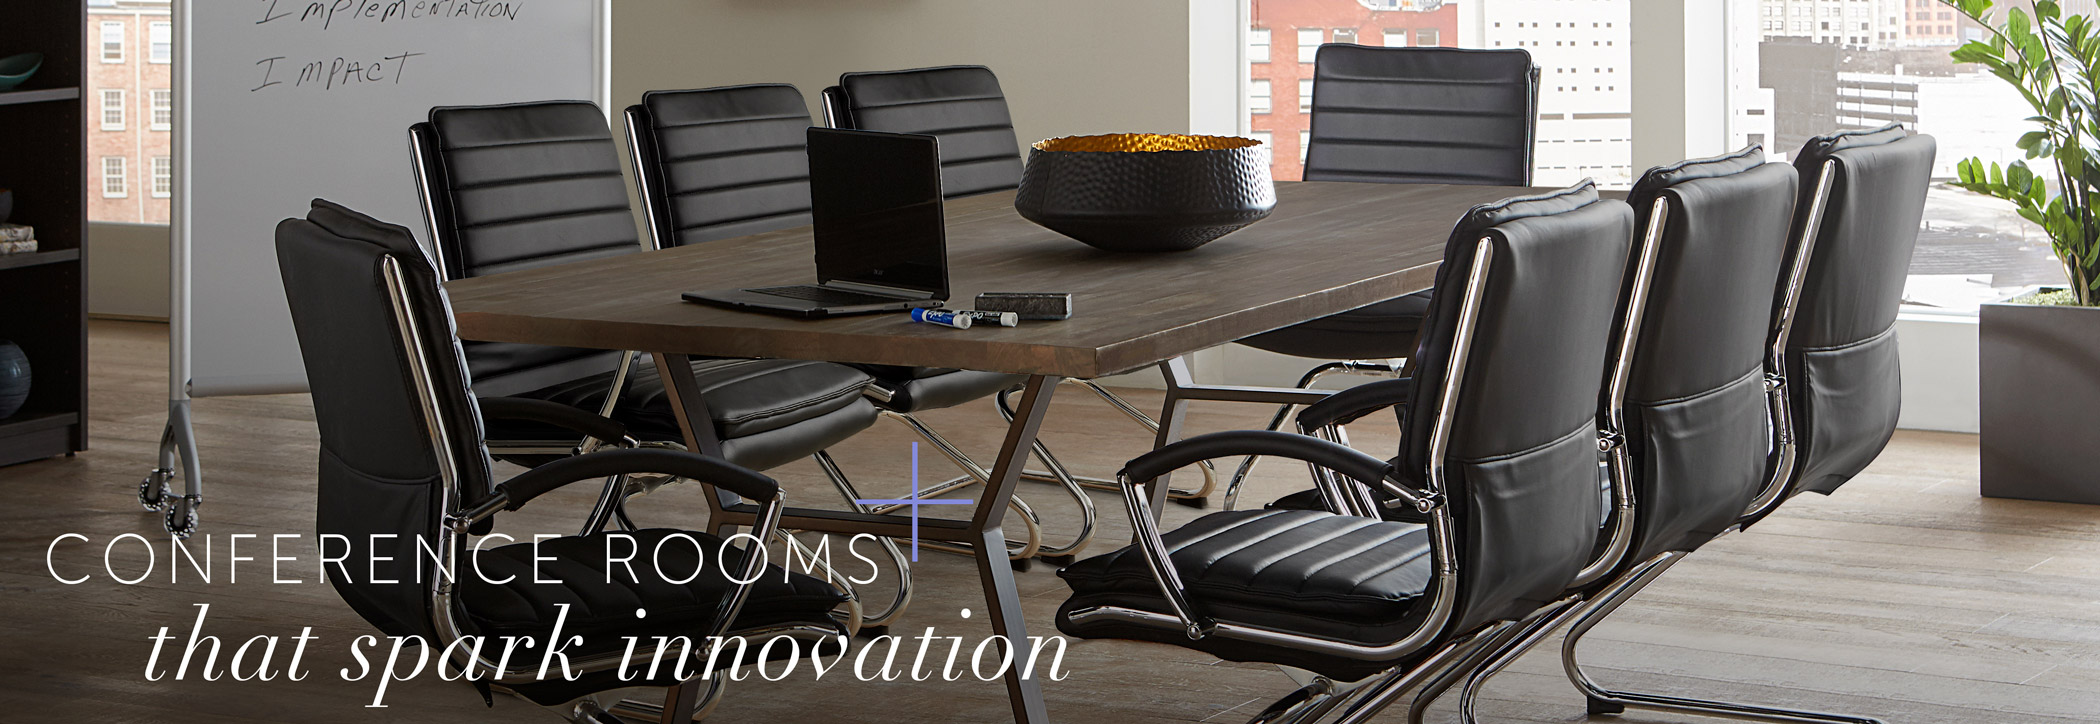 Rented conference table with words 'conference room that sparks innovation'